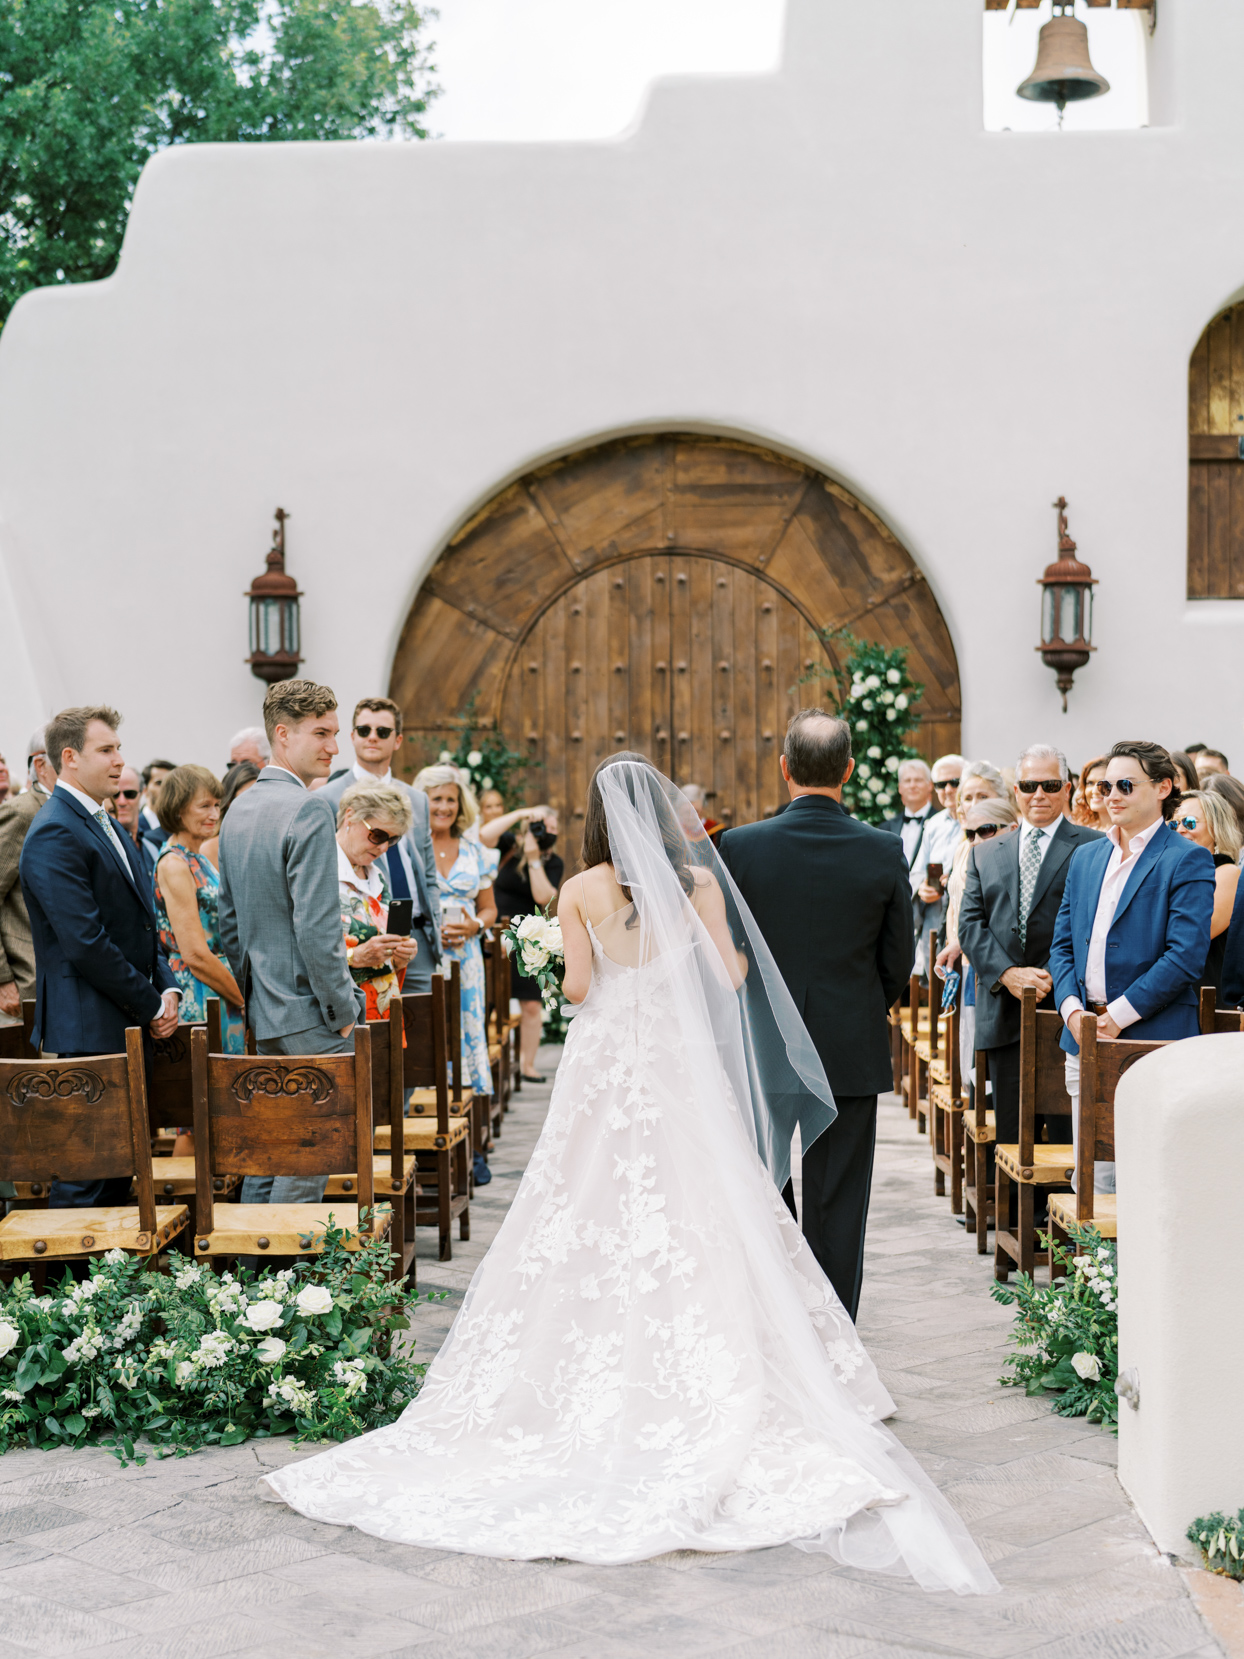 guests watch bride walk processional with father of bride